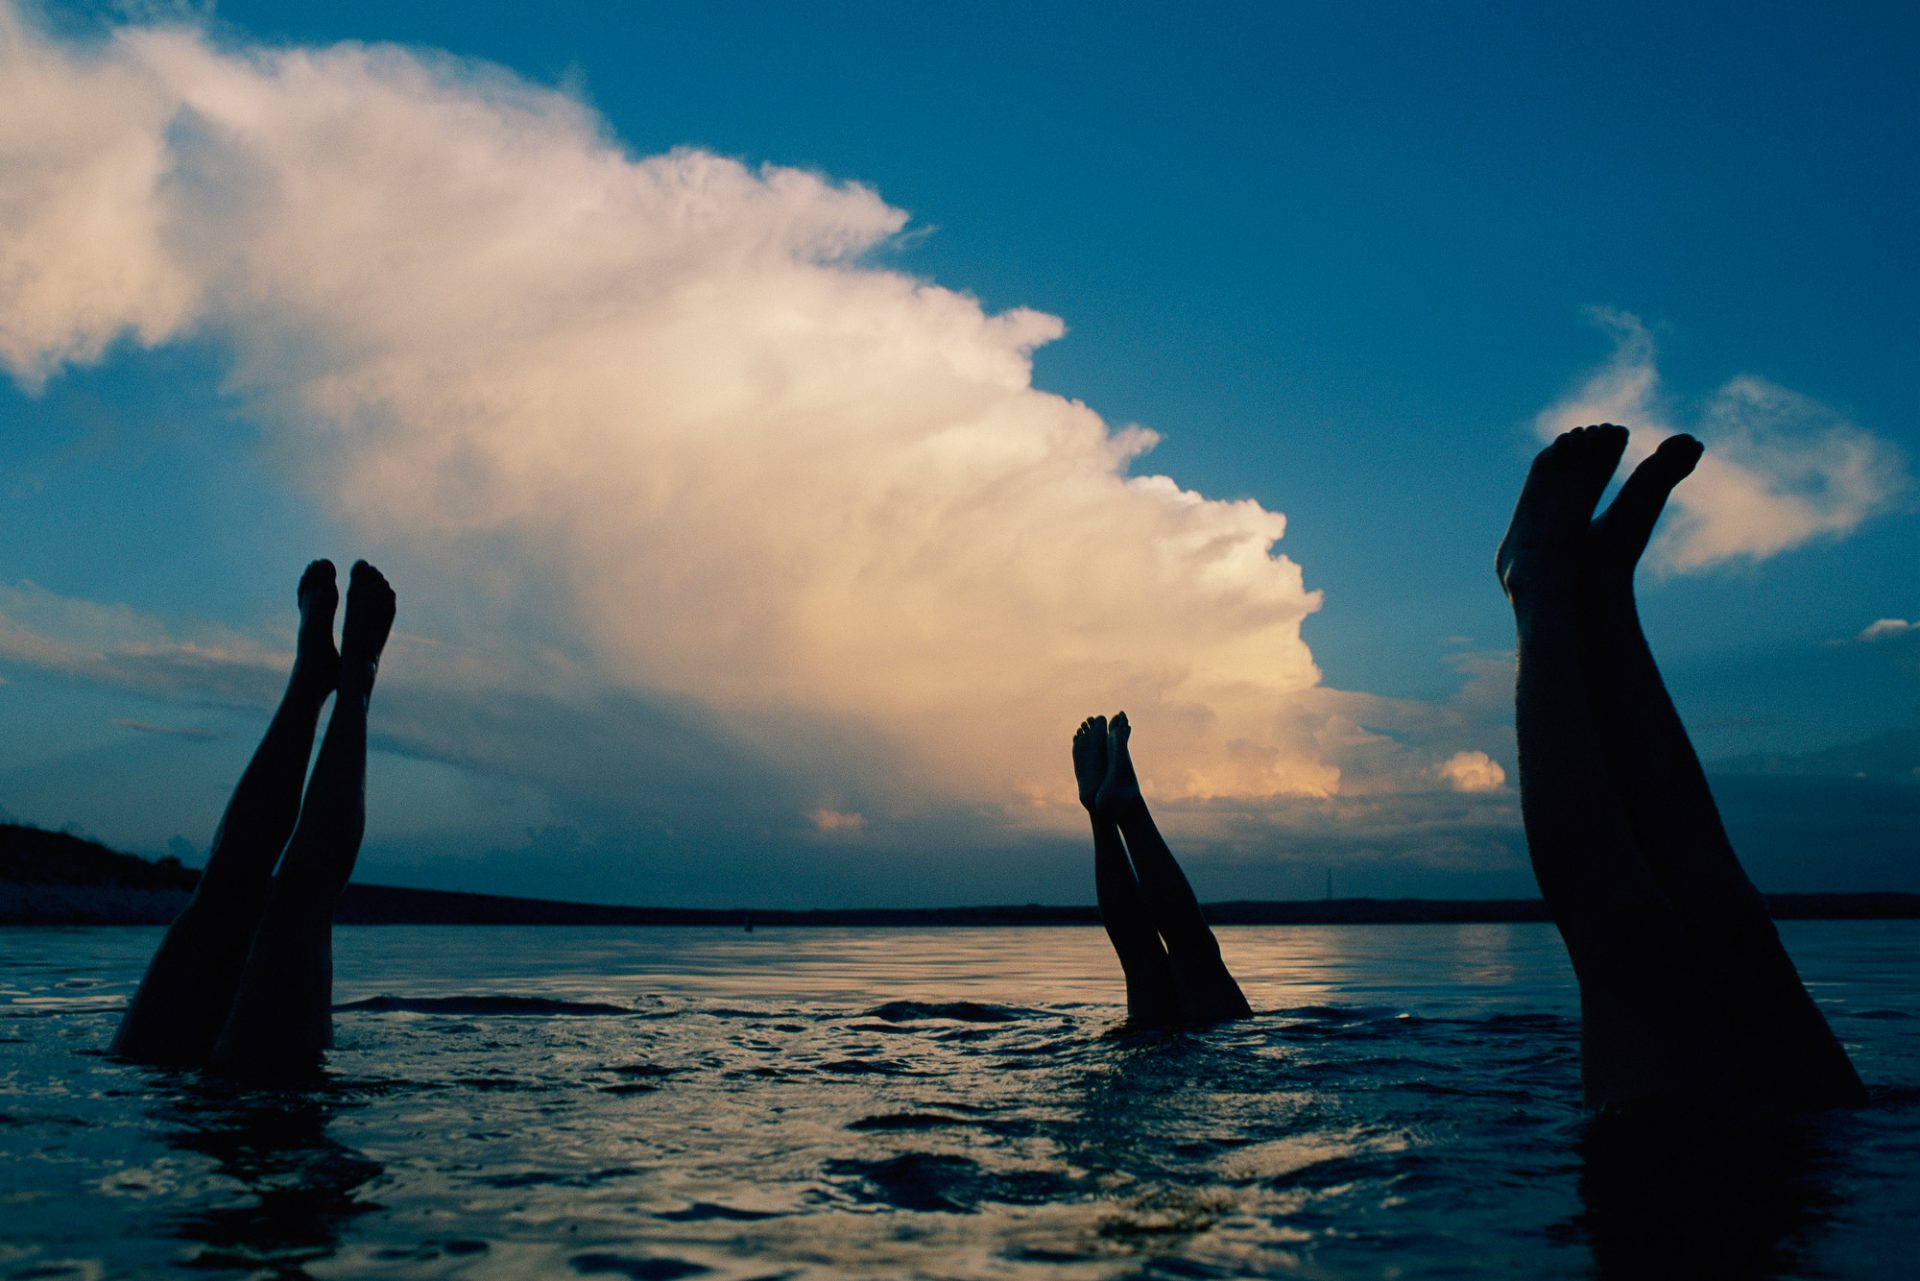 Photo: Three pairs of legs stick out of the water in Lake McConaughy, as a thunderstorm creeps forward in the distance.